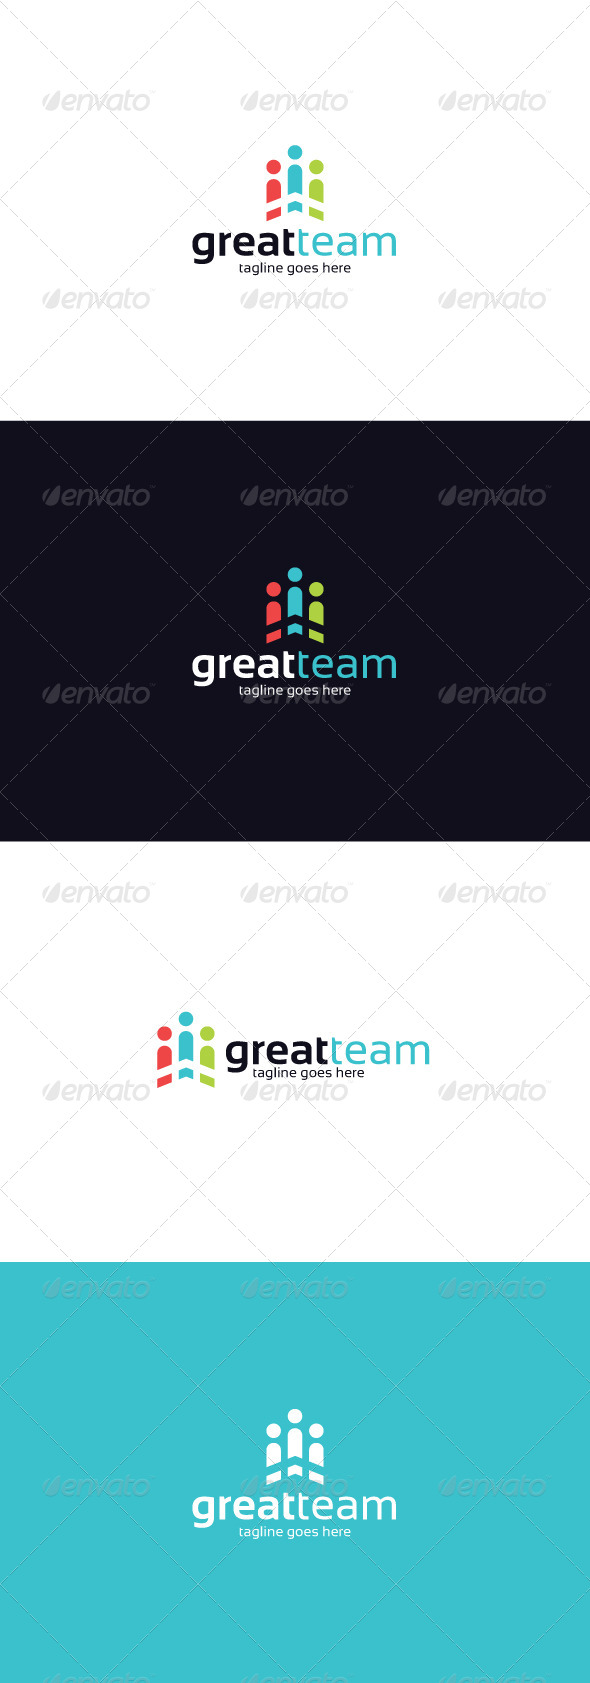 GraphicRiver Great Team Logo 8373596